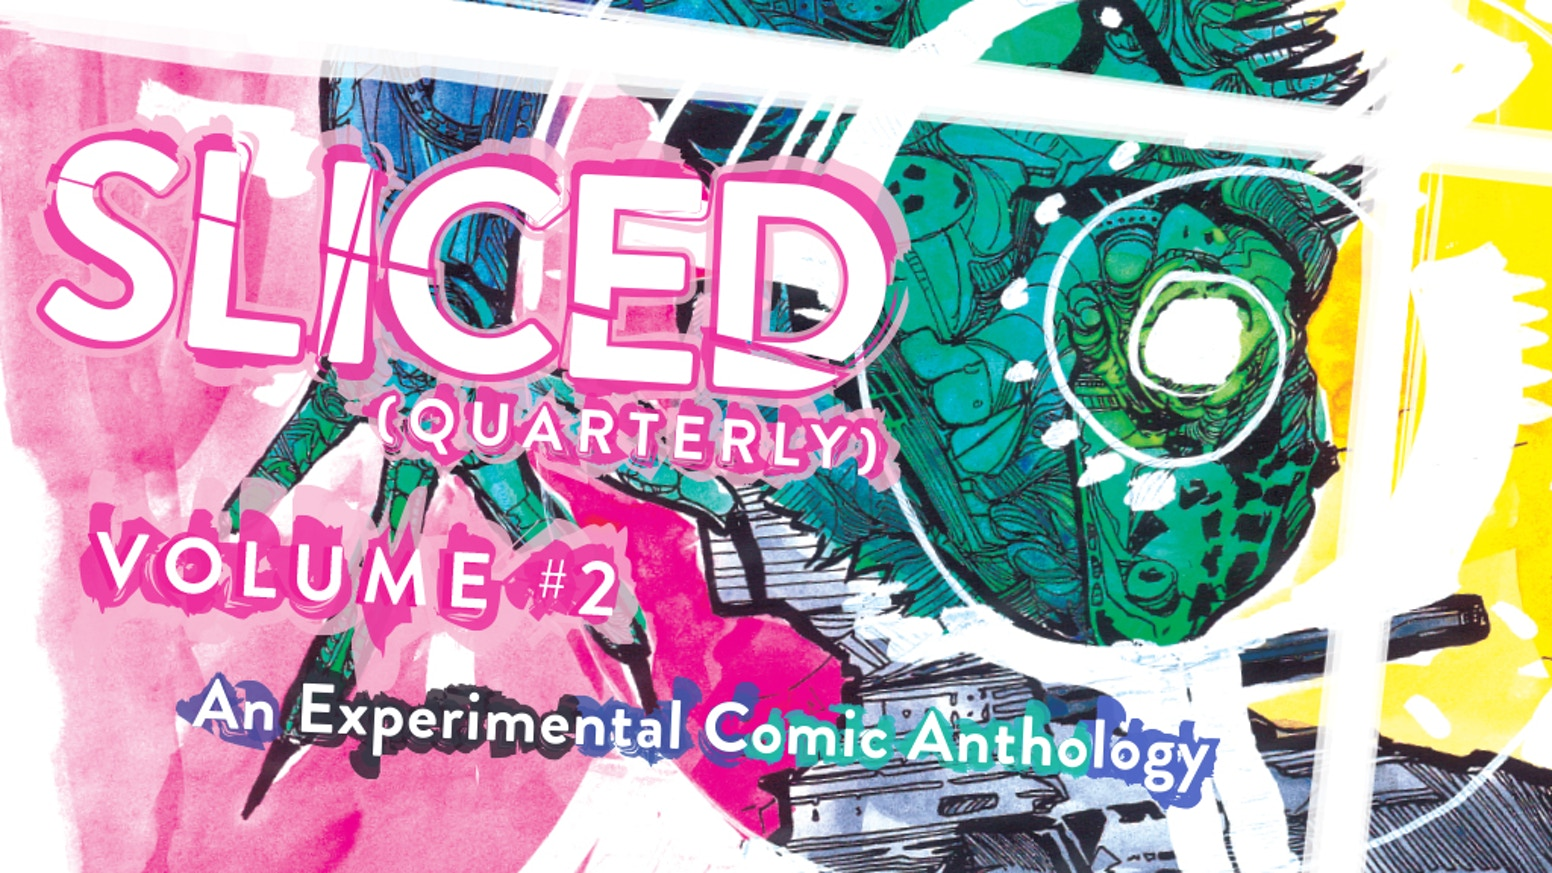 Sliced Quarterly Vol. 2 collects issues #5-8 of the experimental comic anthology. Featuring simple stories told in extraordinary ways.